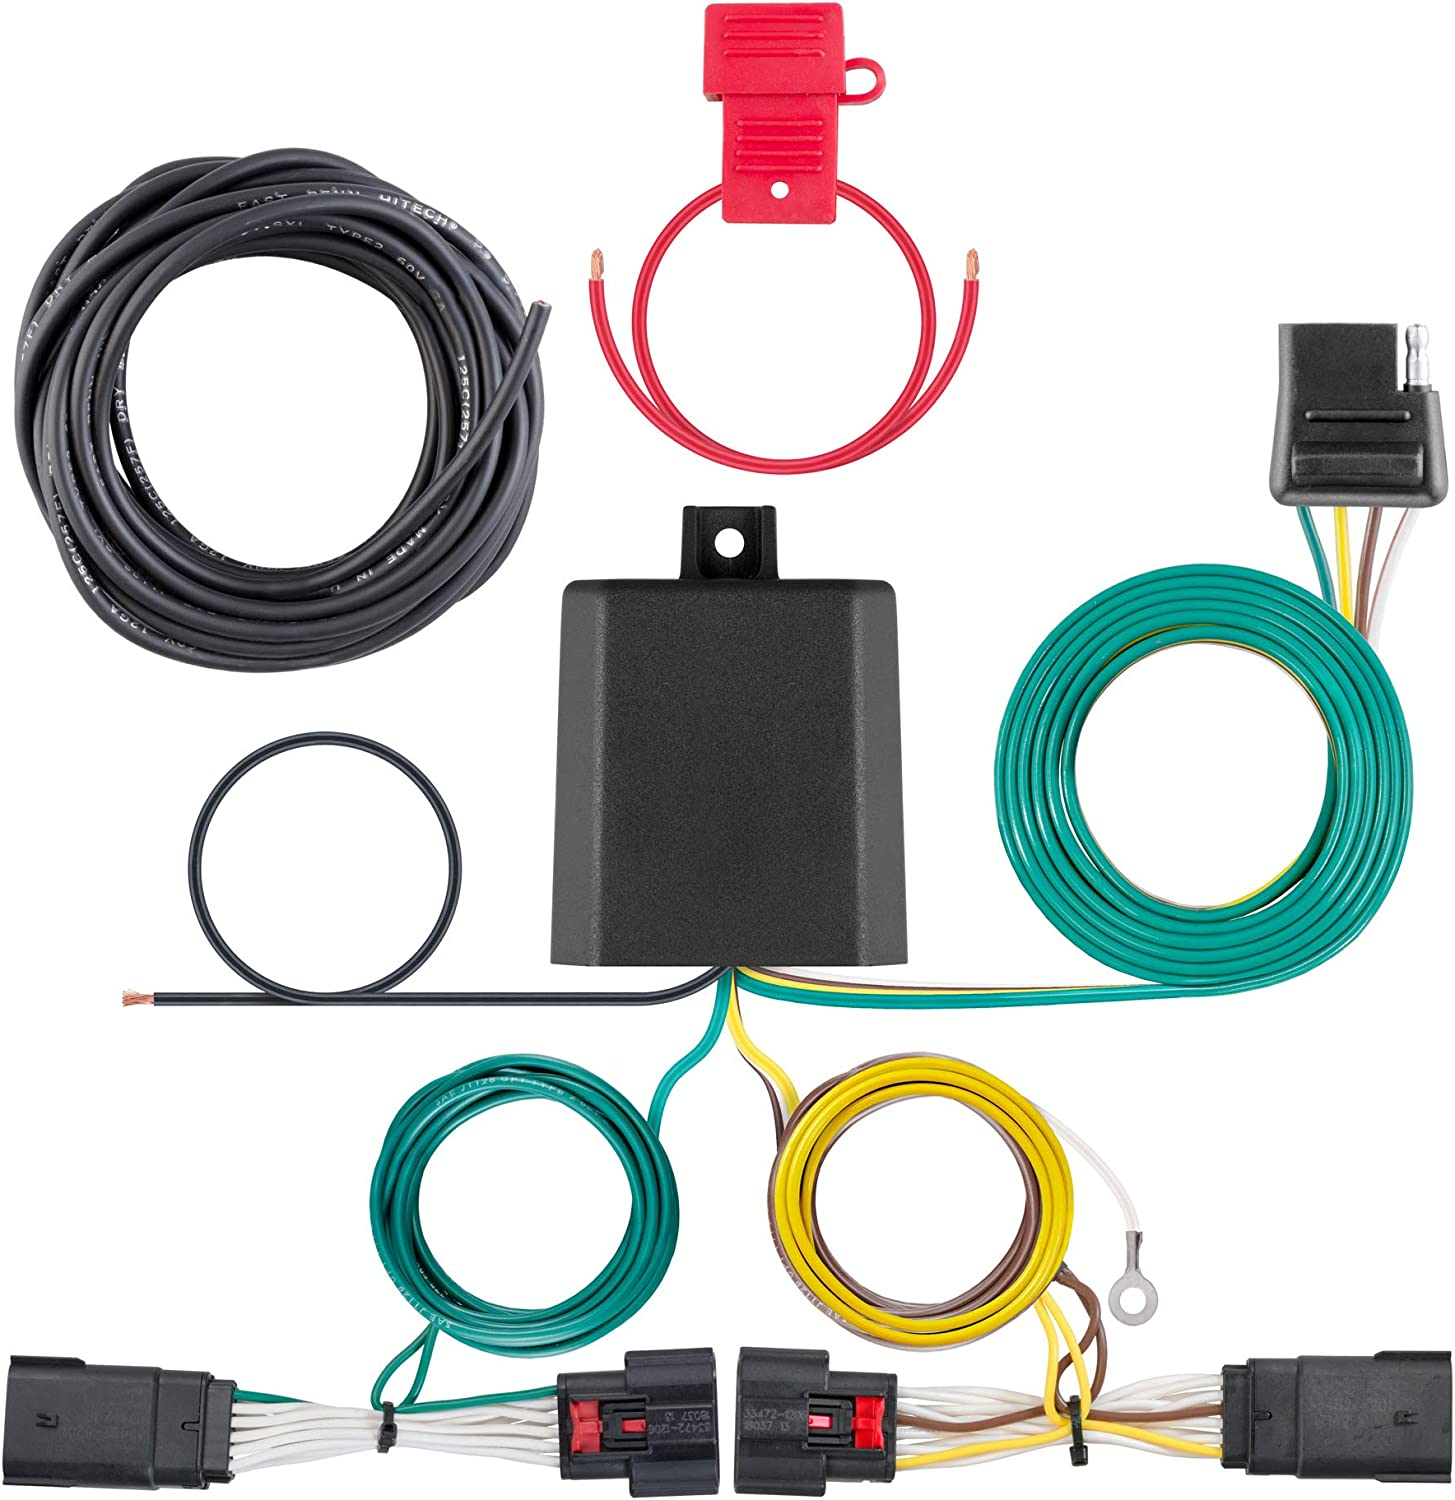 CURT 56407 Vehicle-Side Custom 4-Pin Trailer Wiring Harness, Fit